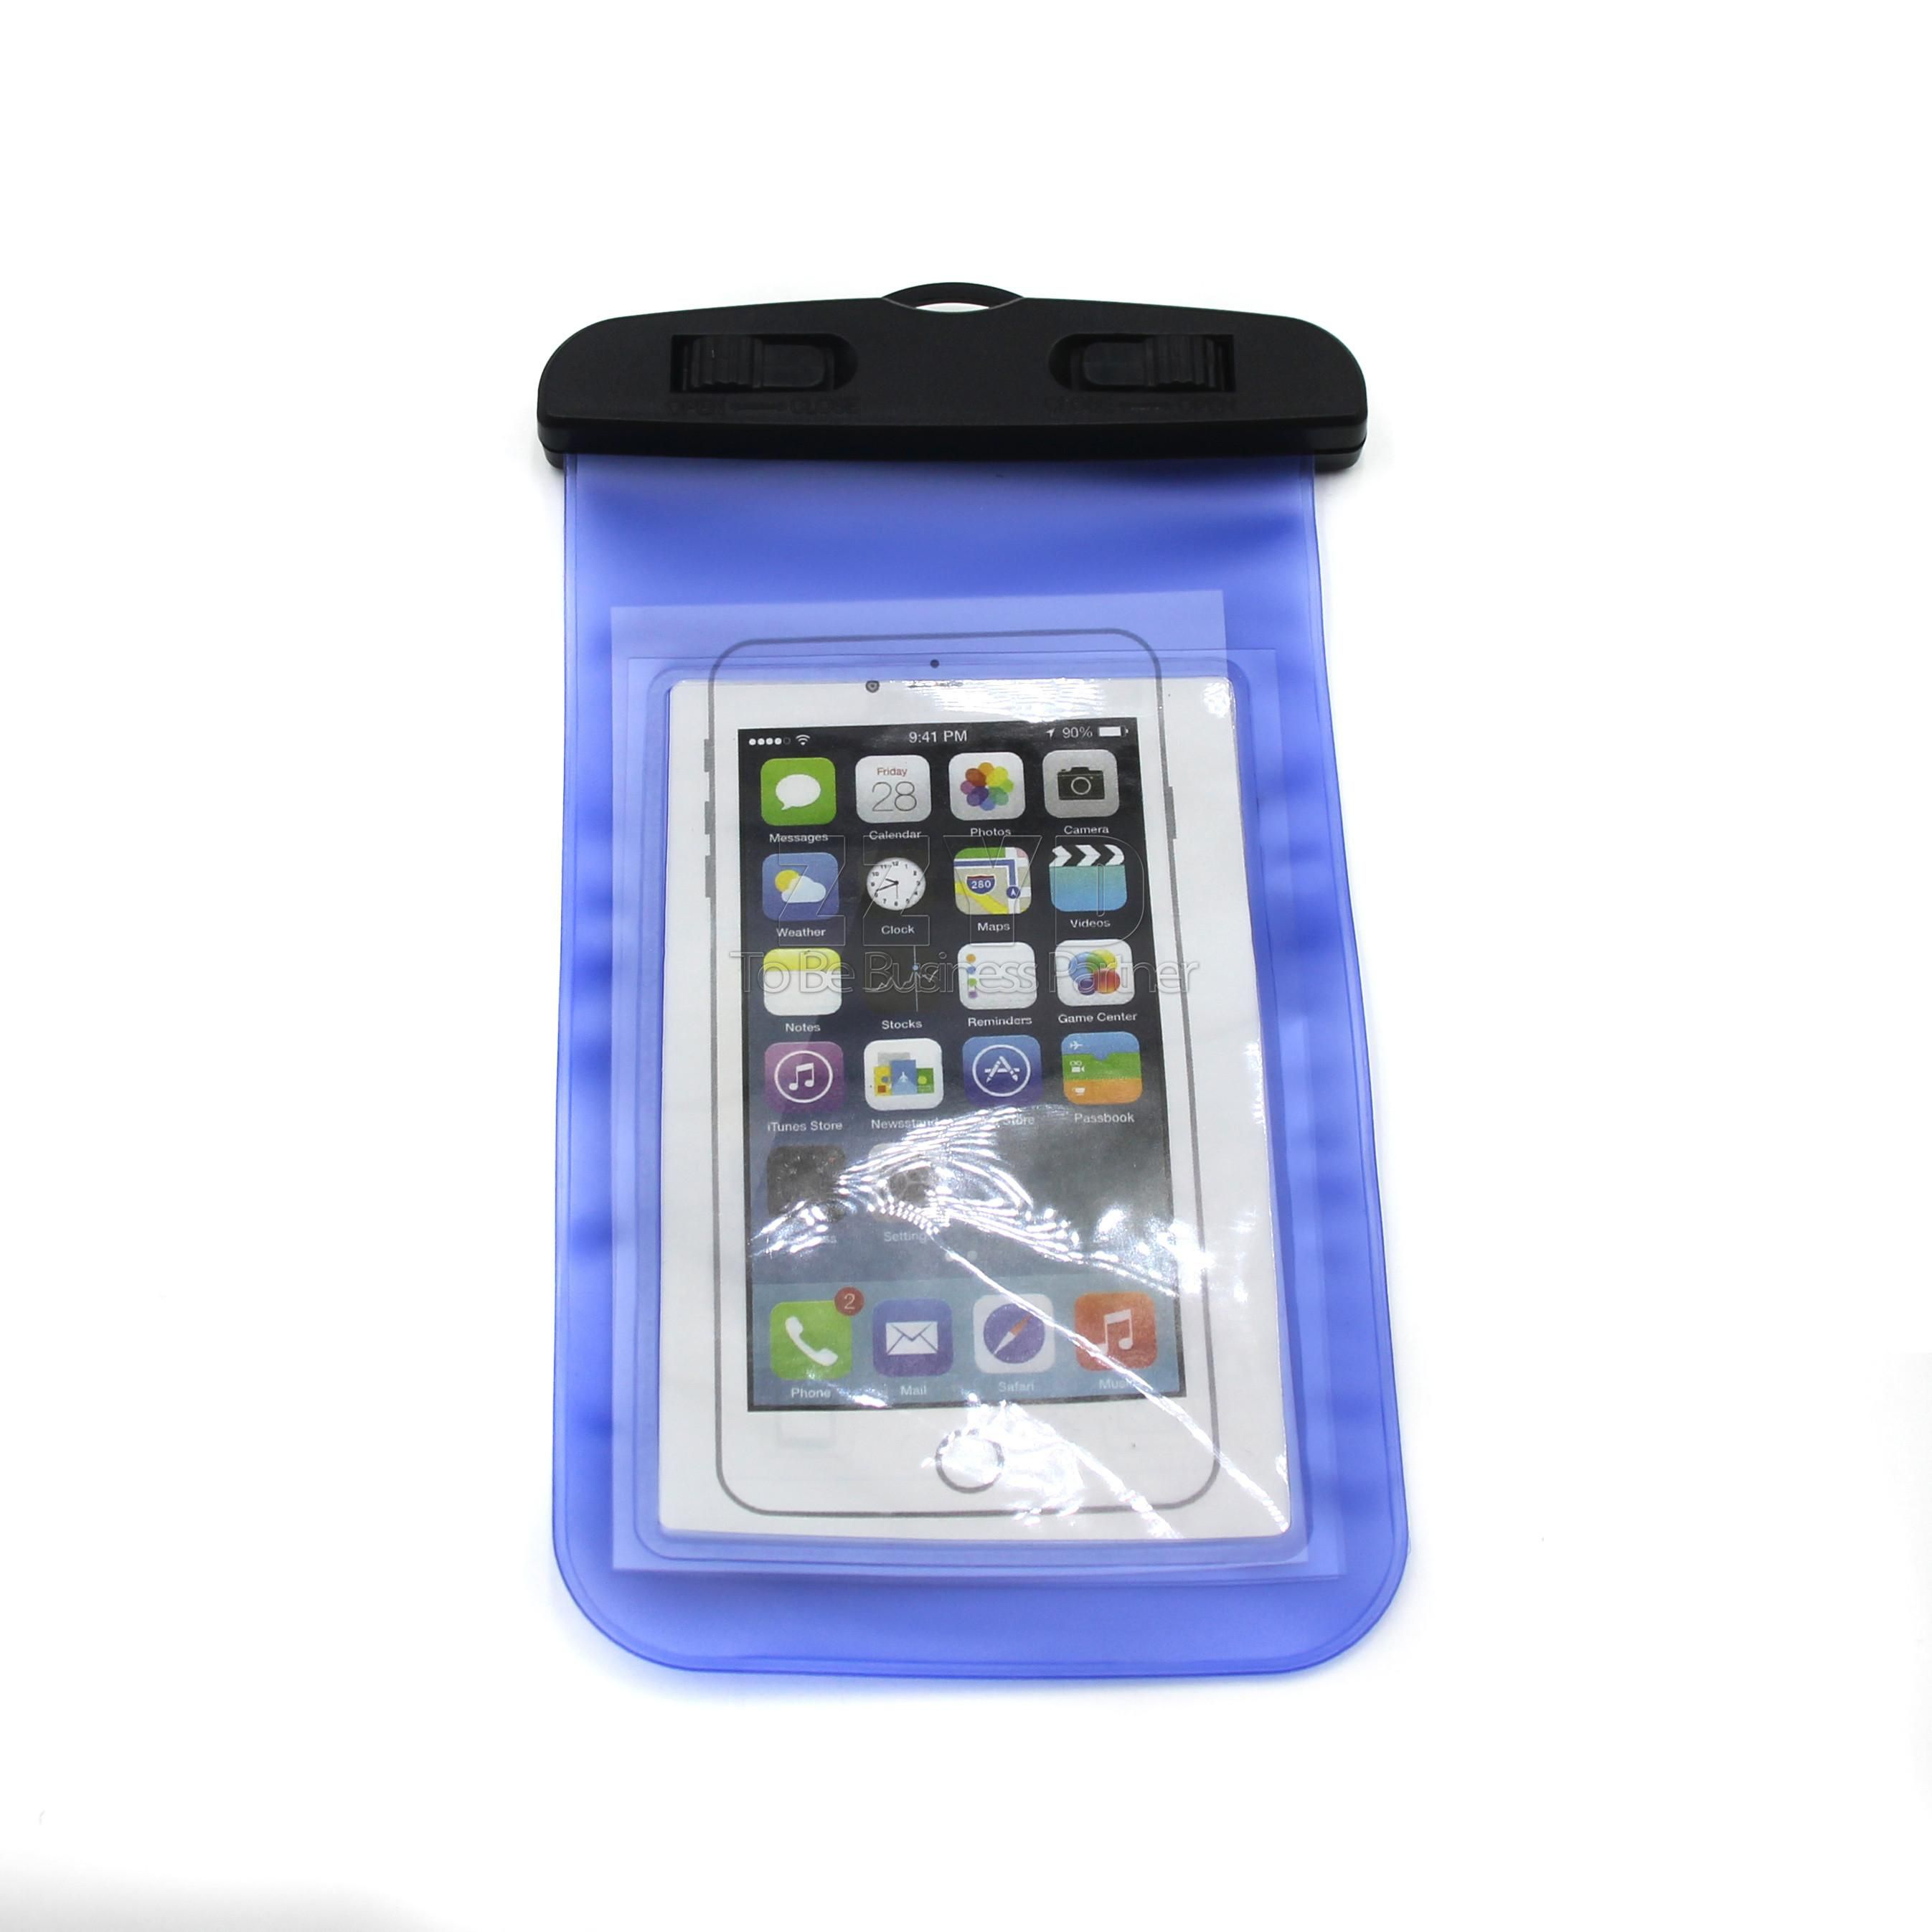 Nest Waterproof case bag PVC plastic Dry bag Protective universal Phone Bag Pouch For Sport Swim bicycle Diving For Any mobile phone